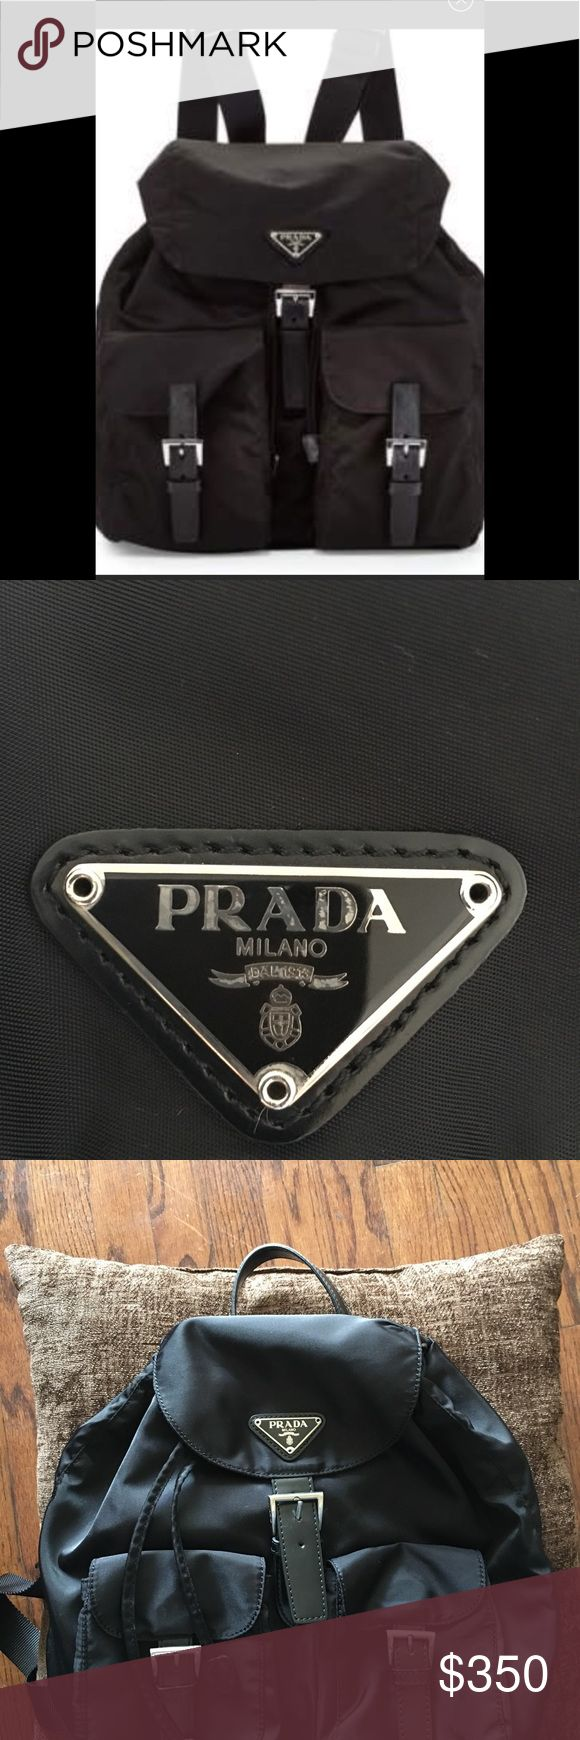 PRADA BACKPACK-AUTHENTIC-NYLON AN LEATHER 11 x 10 backpack-AUTHENTIC PRADA BACKPACK VINTAGE, no white tag inside. SHEEN LIKE NEW. AUTHENTIC AN BEAUTIFUL. WELL  LOVED. Read notes of the authentic vintage . an PRADA ' R'. TAKE NOTE OF THE BEAUTIFUL GLOSSY FINISH, Prada Bags Backpacks